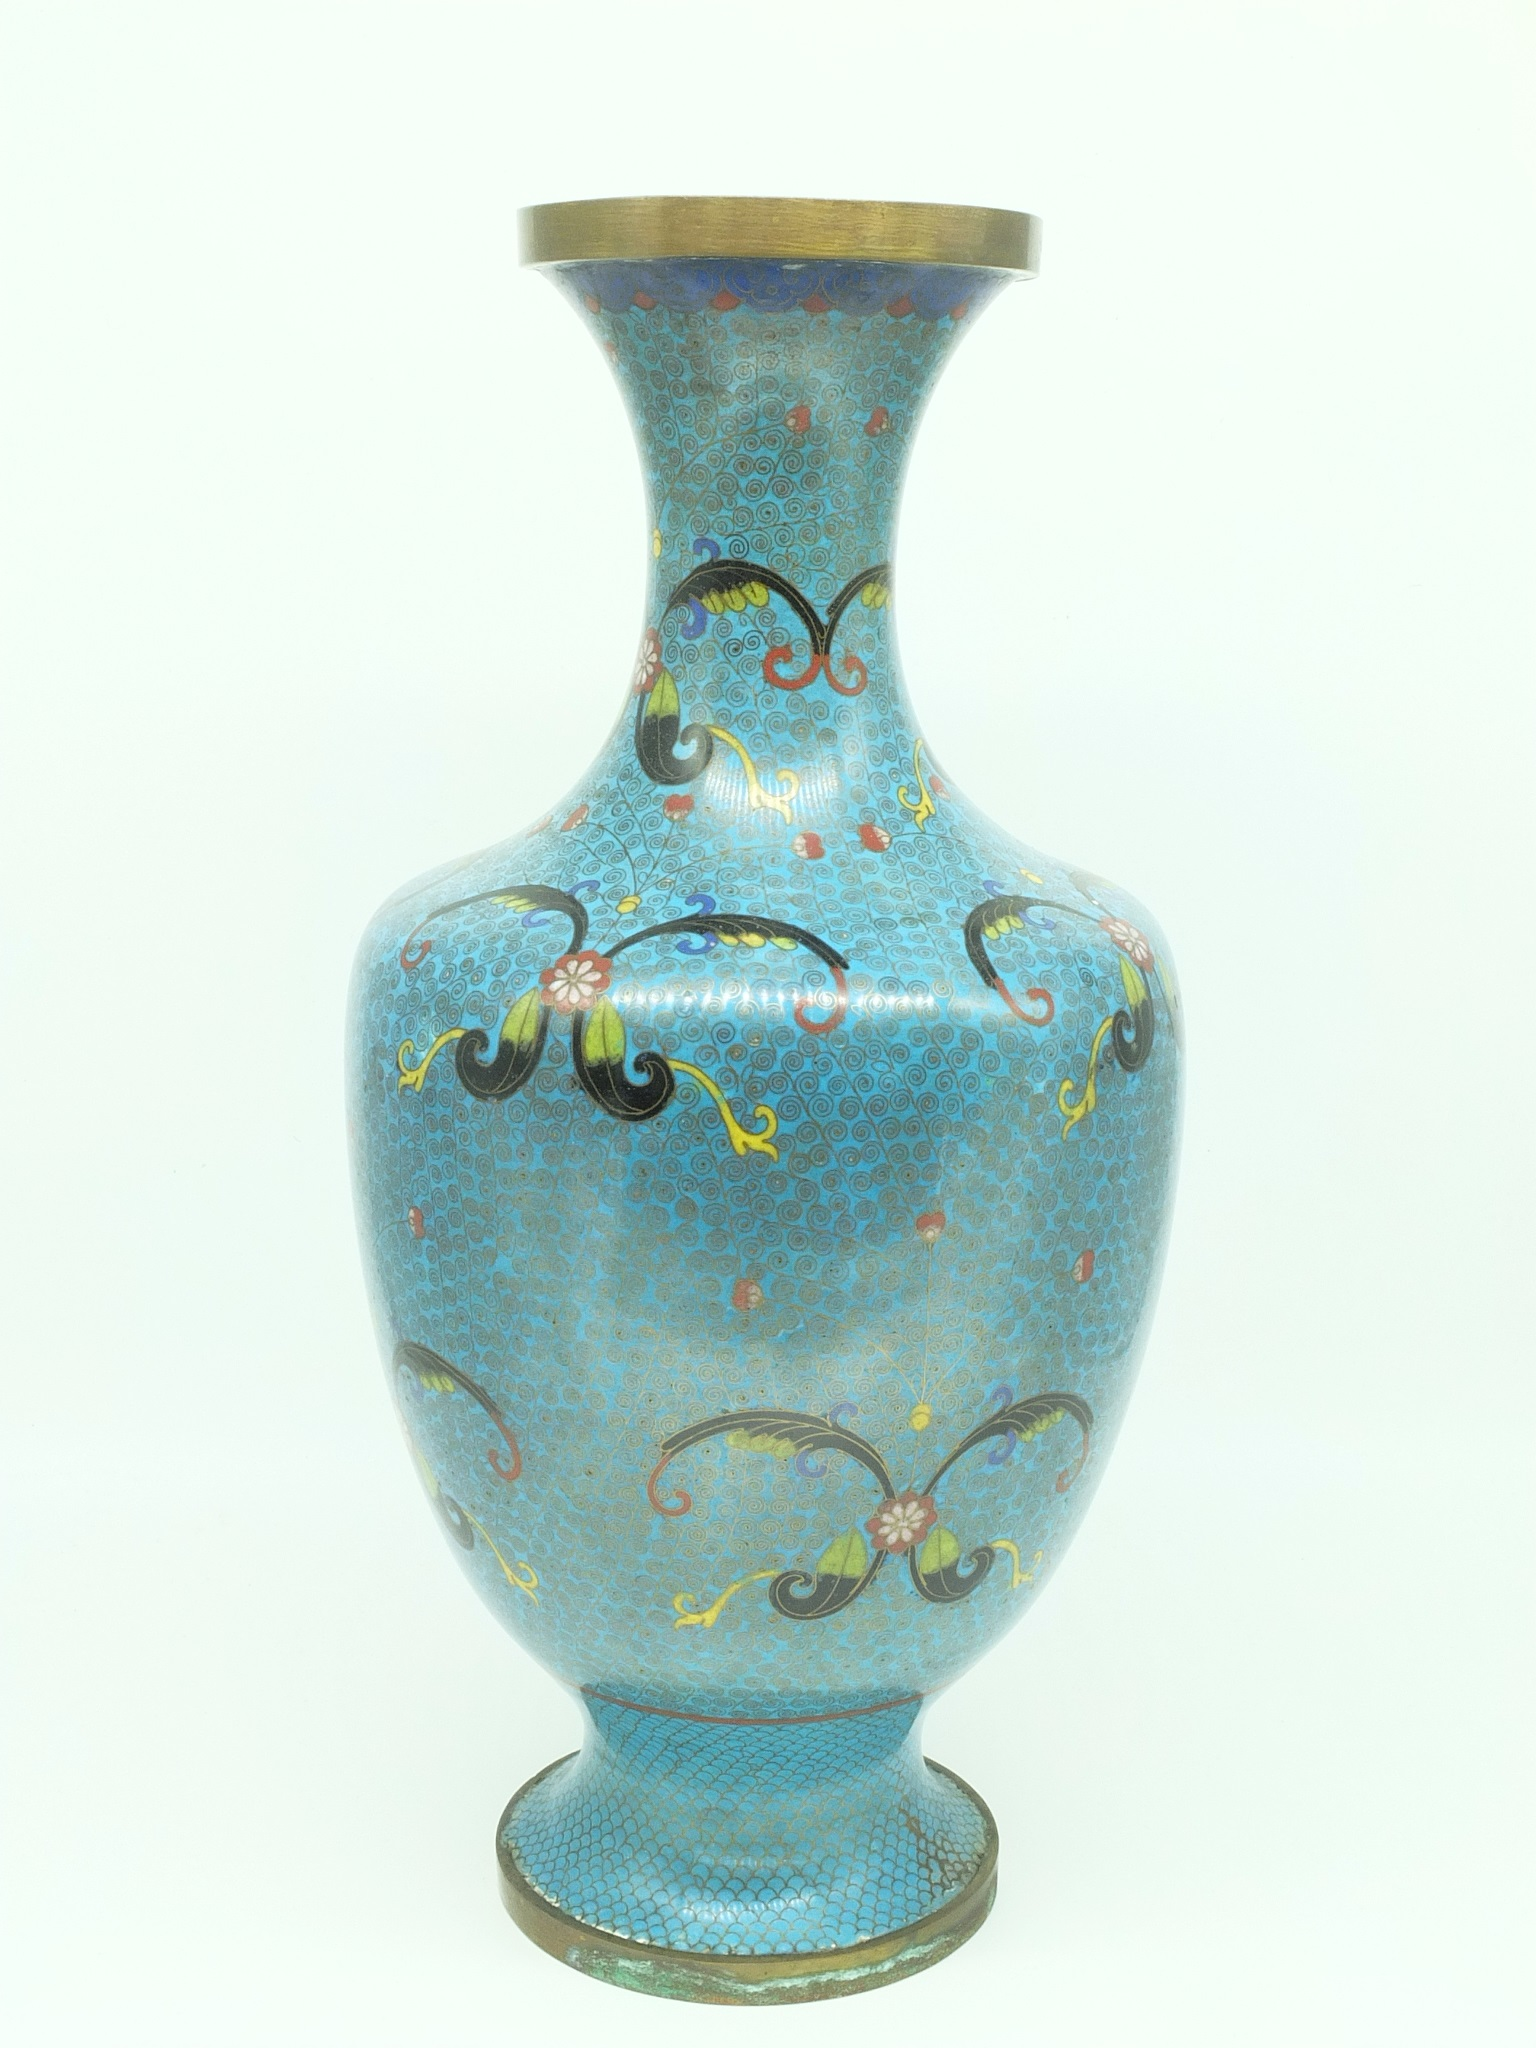 'Large Chinese Cloisonne Vase, Mid 20th Century'